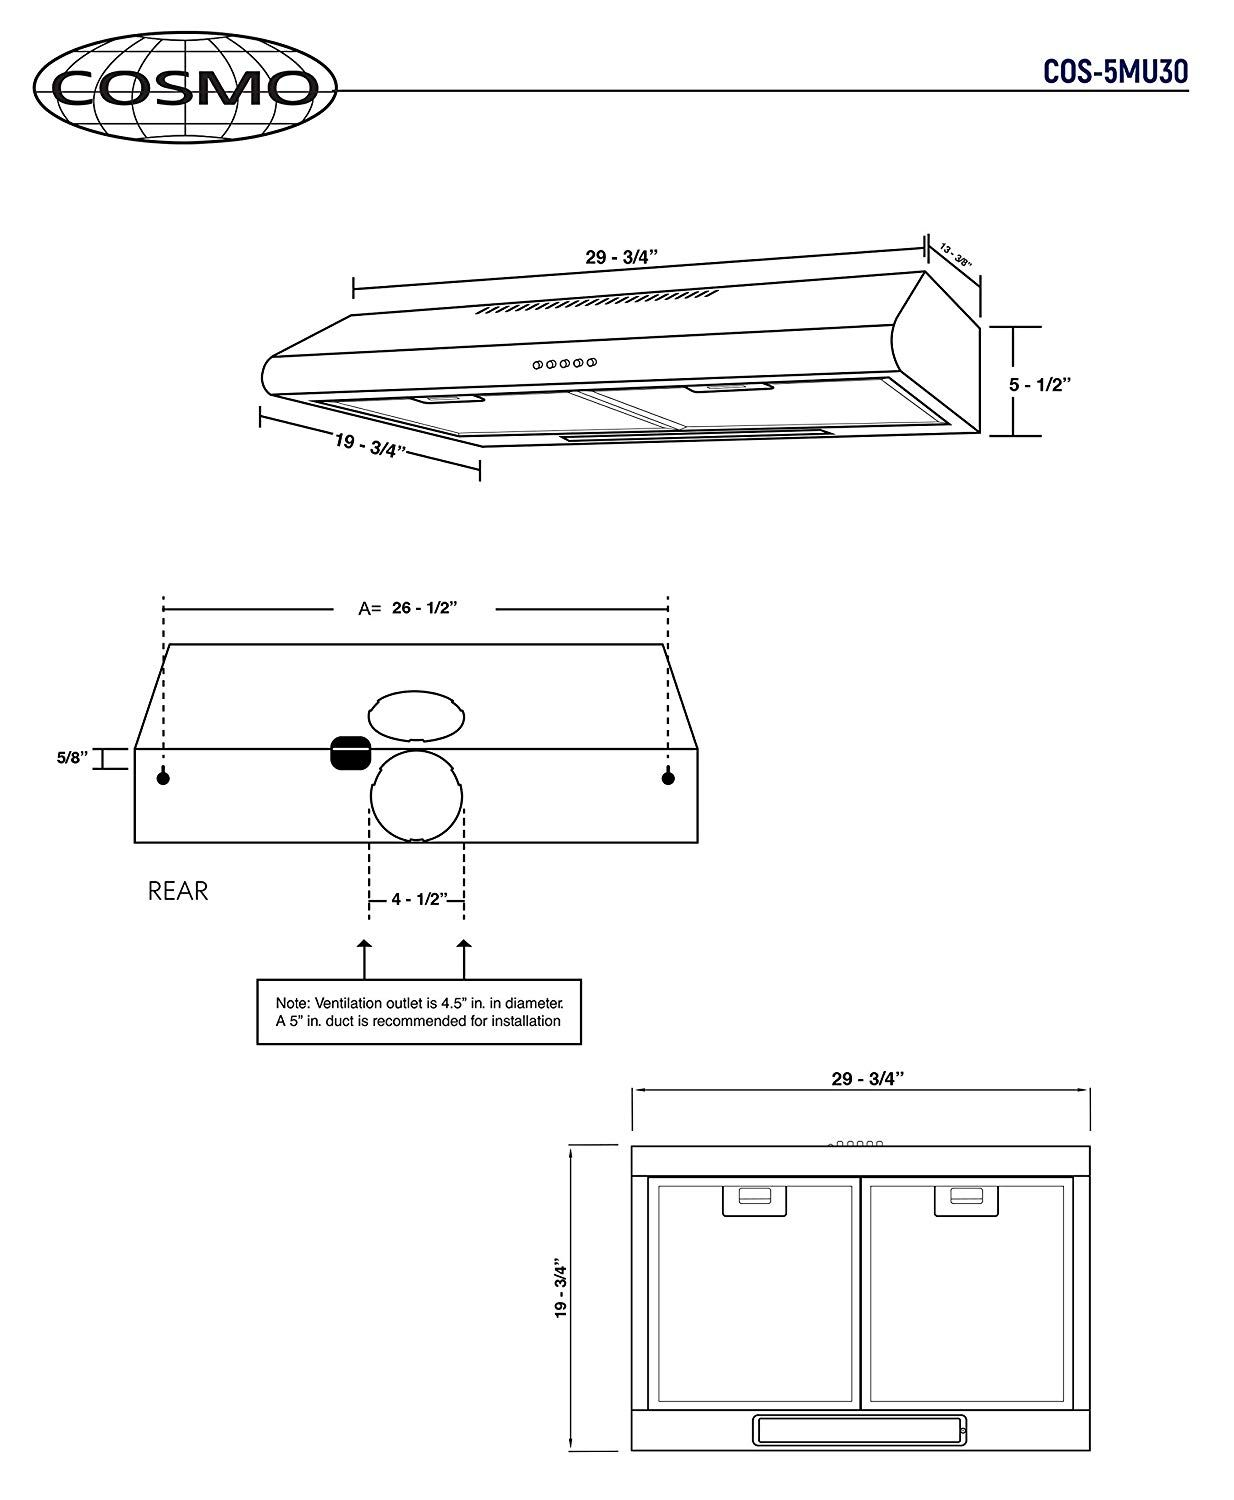 Suitable For Top Or Back Venting This Range Hood Can Be Installed Under A Cabinet Or Against A Wall Range Hood Under Cabinet Range Hoods Condo Kitchen Remodel